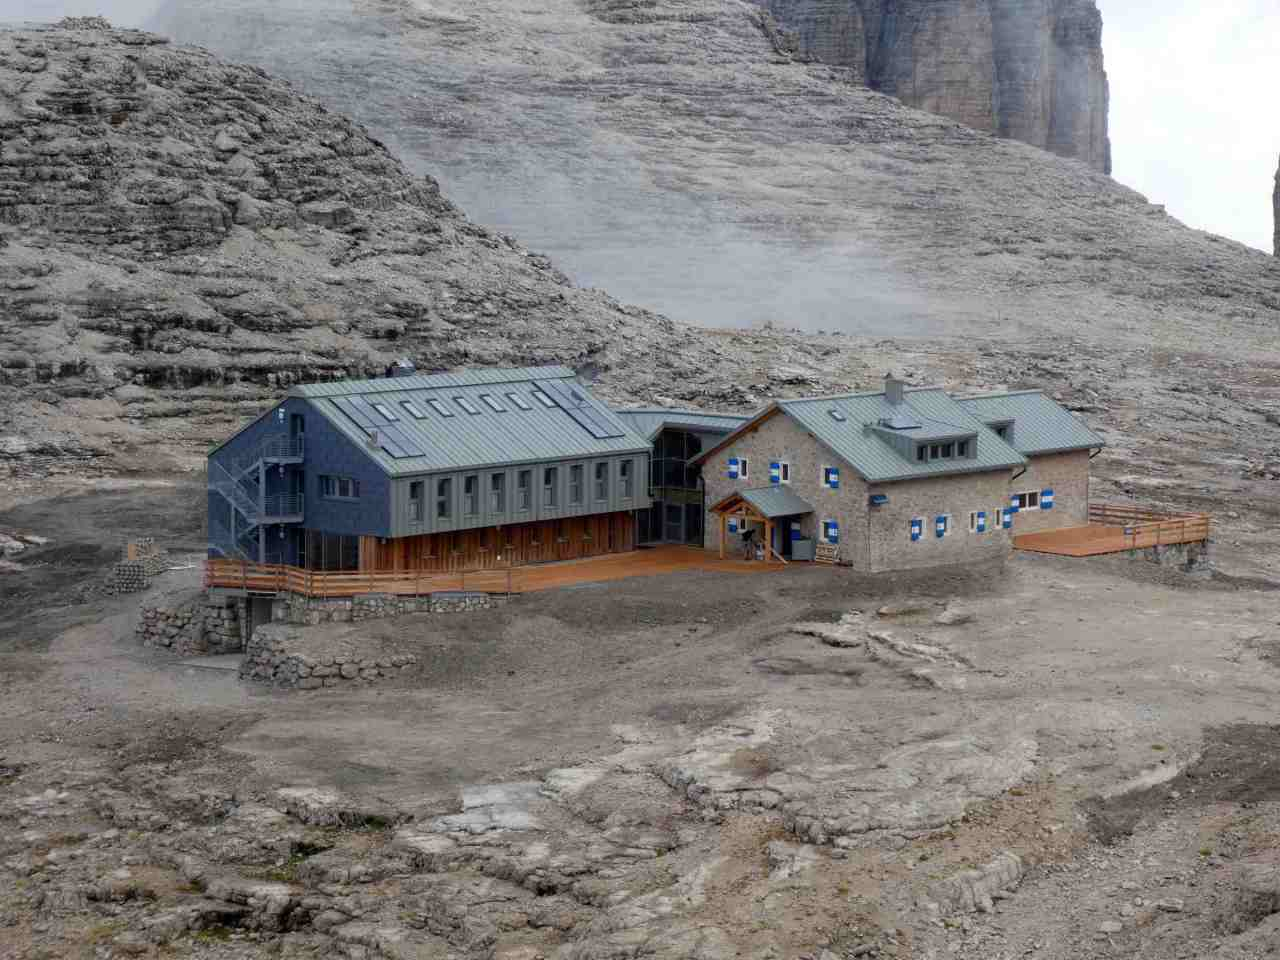 High life returns to historic mountain hut 3,000 metres up theDolomites